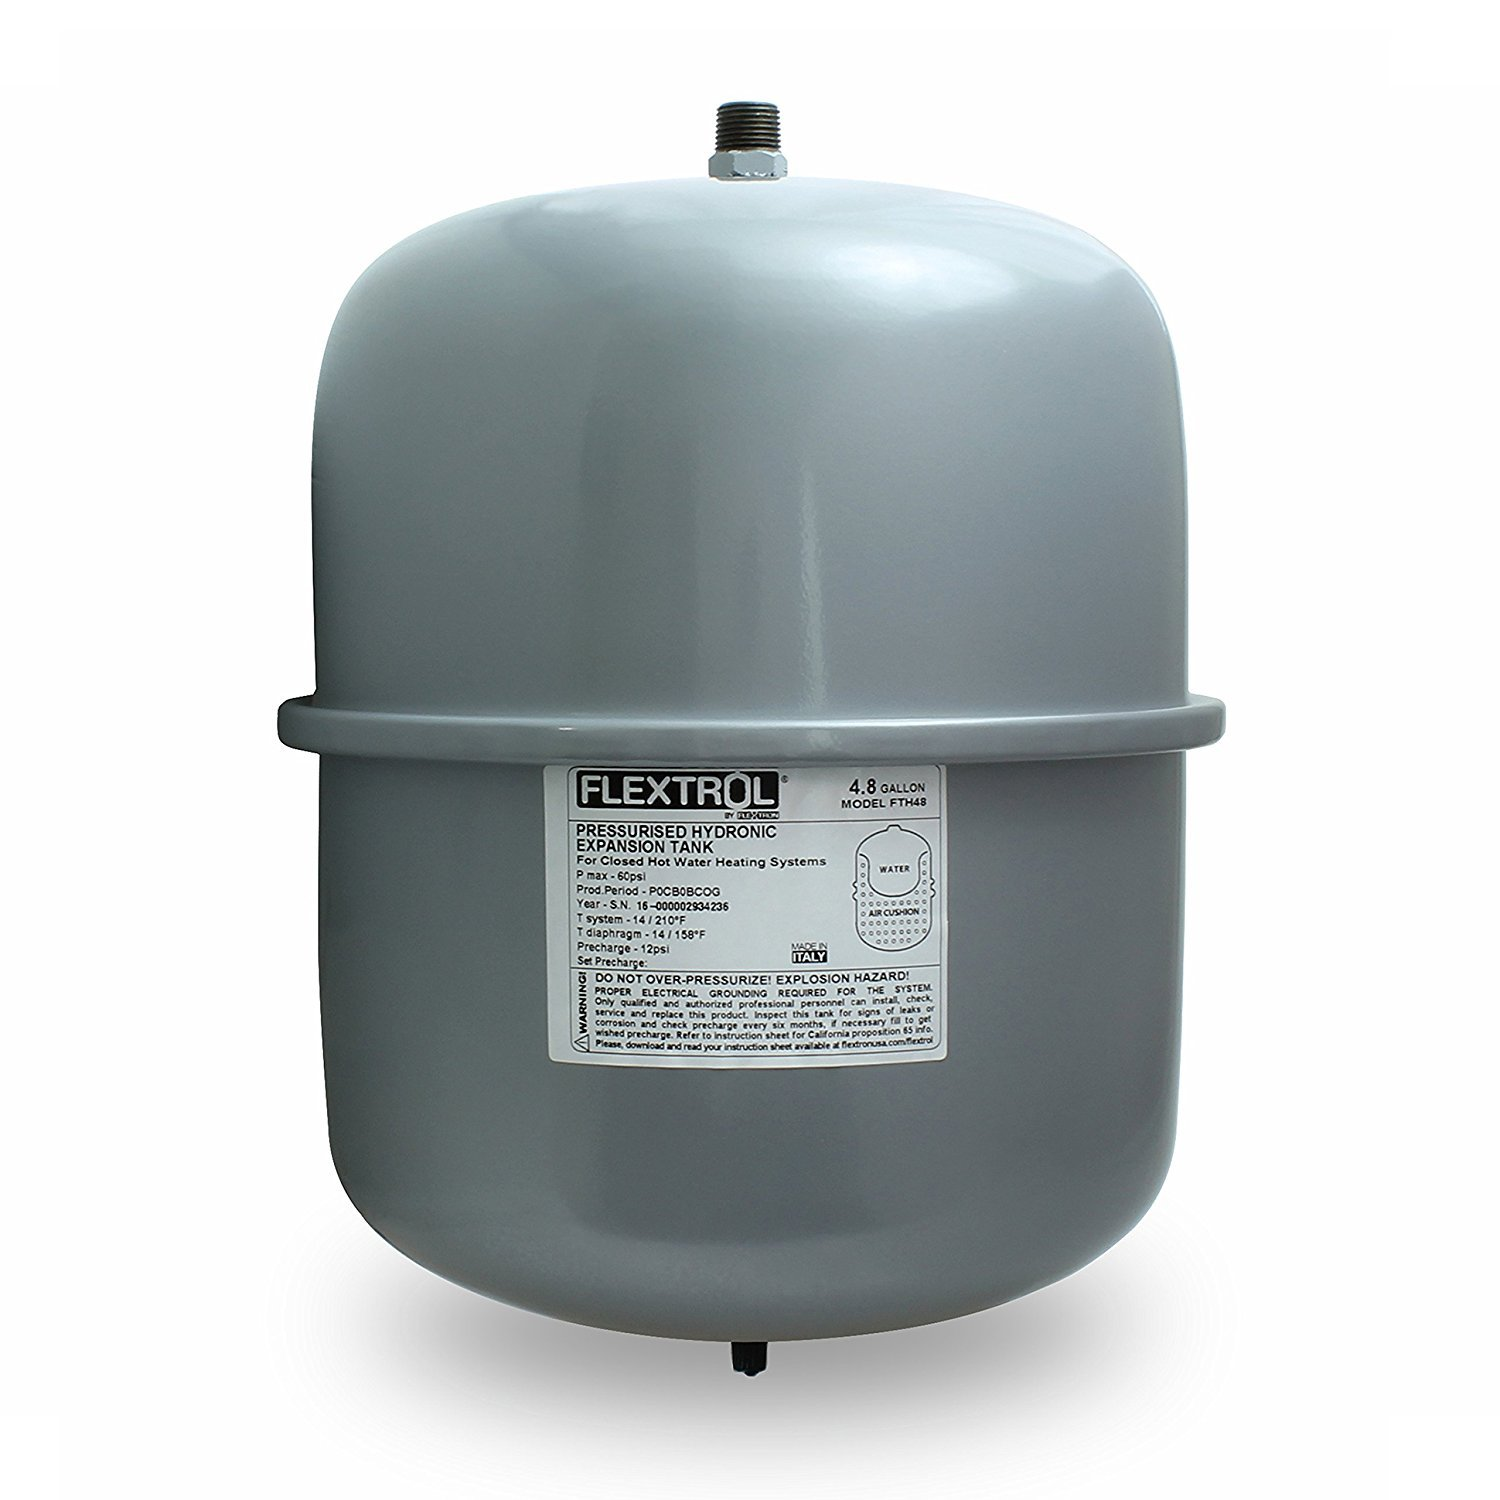 Flextrol FTH30 Hydronic Expansion Tank 4.8 Gallons for Closed Hot Water Heating Systems, 1/2 Inch MIP Connection, Gray